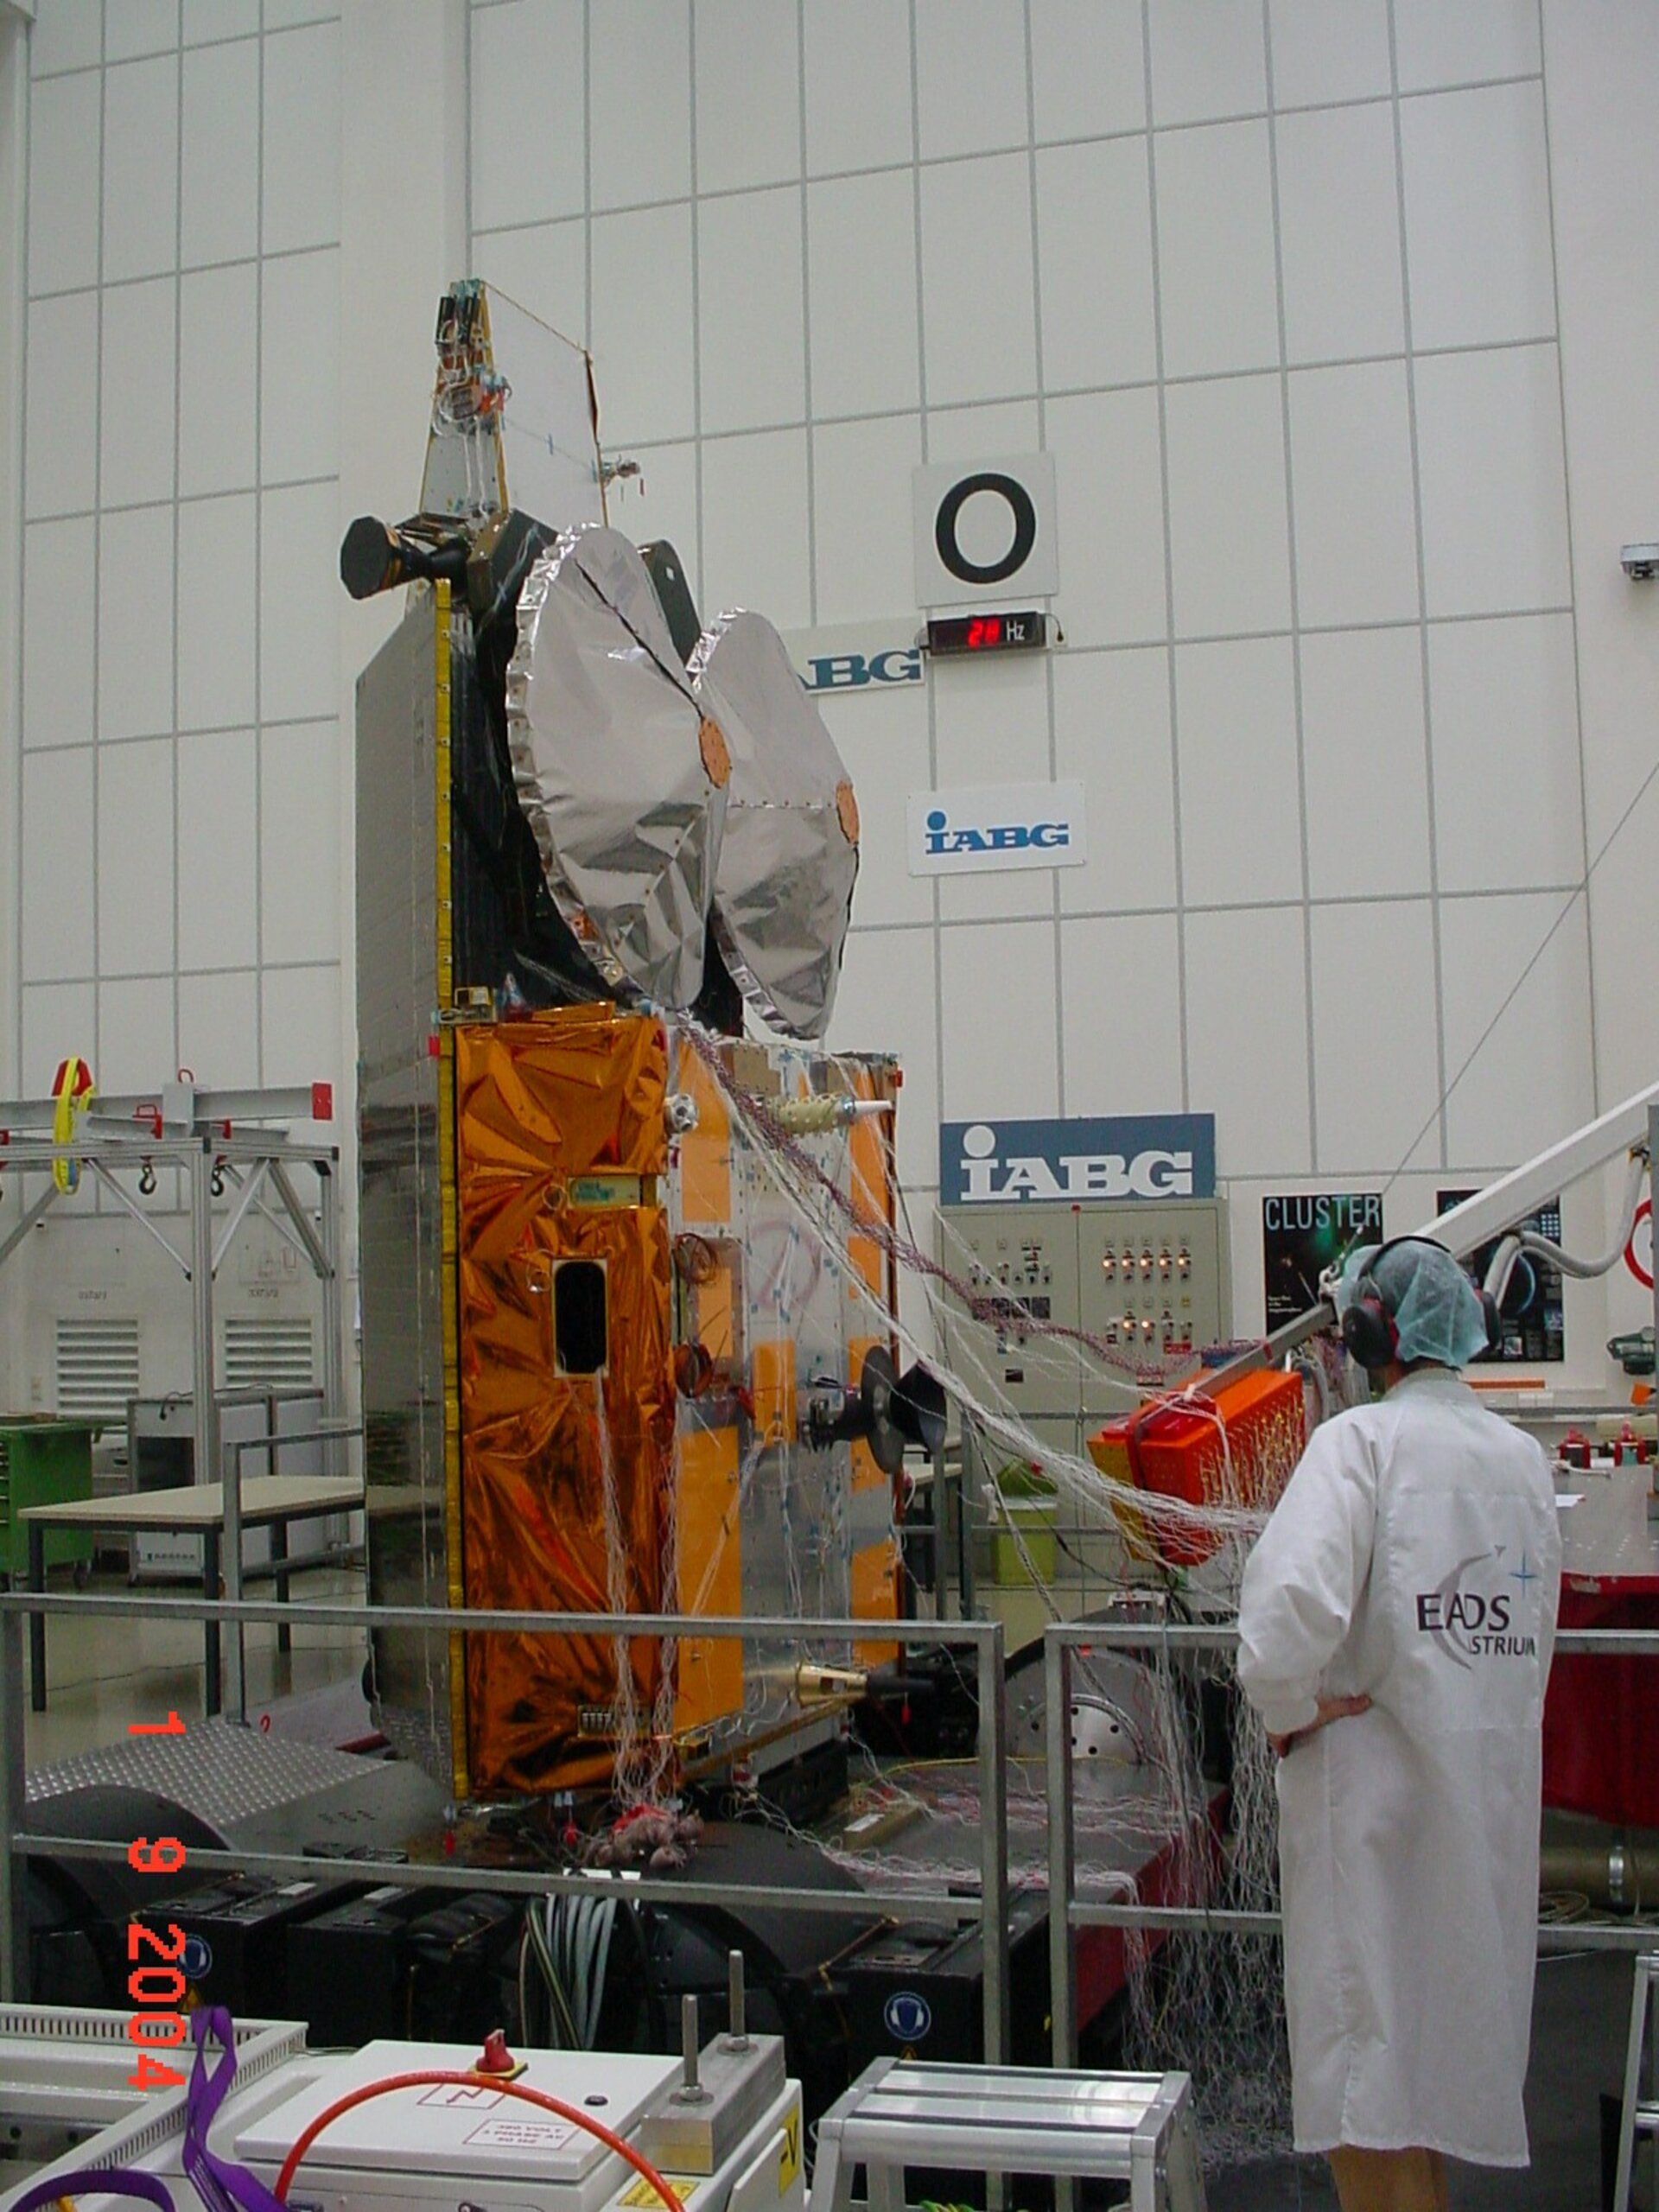 CryoSat undergoing vibration tests